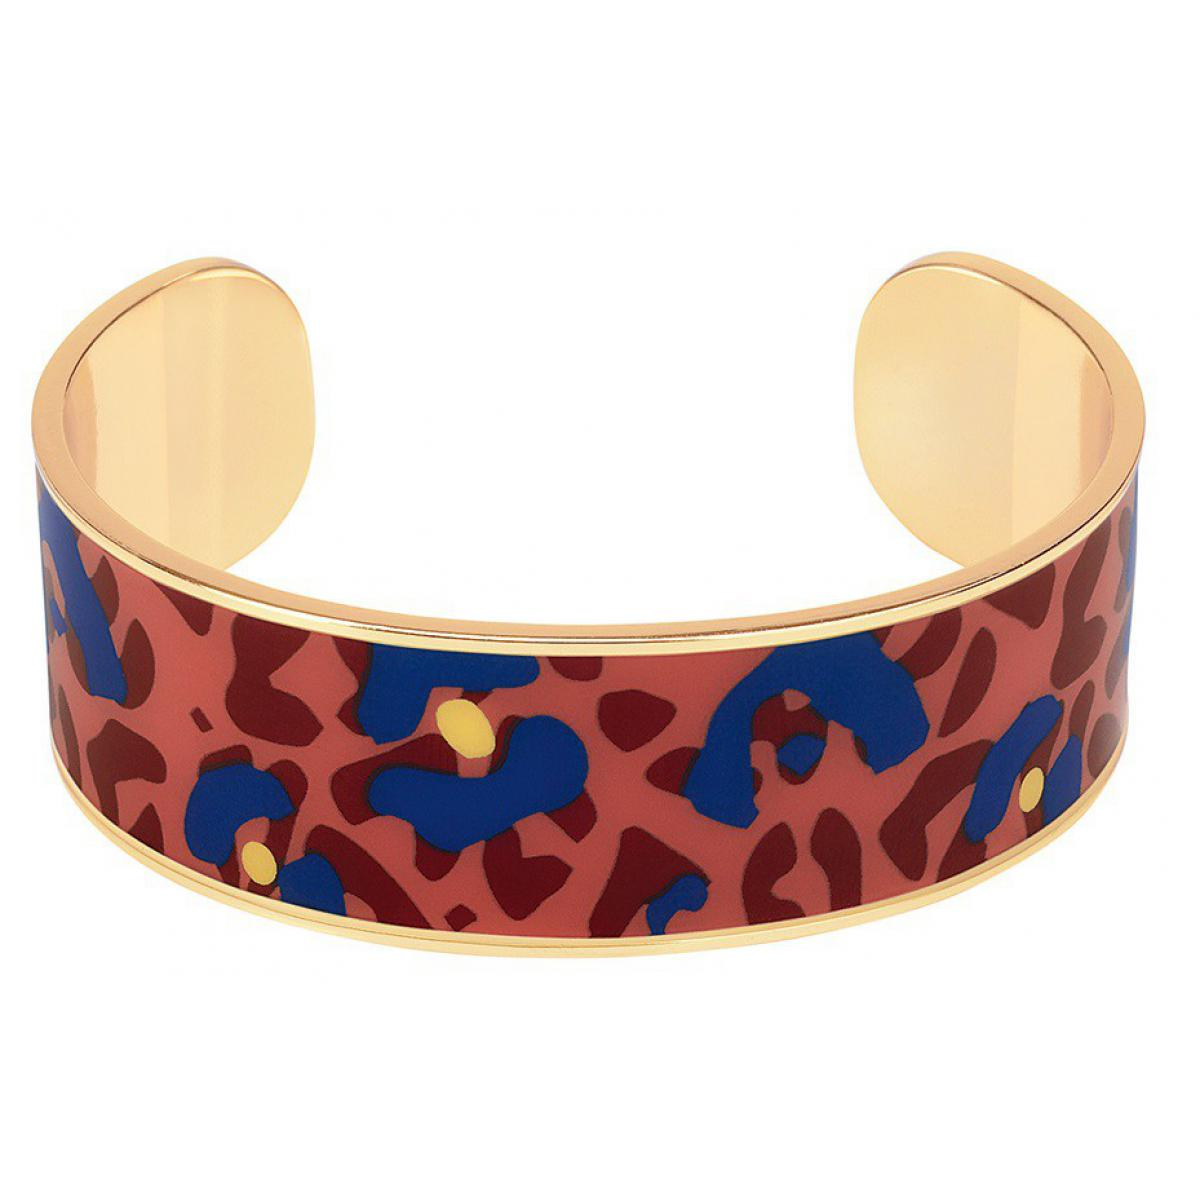 Bangle Up Bracelet Bangle Up Bengale BUP06-BEN-BSO1522 - Bracelet Email Bleu Or Femme BUP06-BEN-BSO1522 Bangle Up